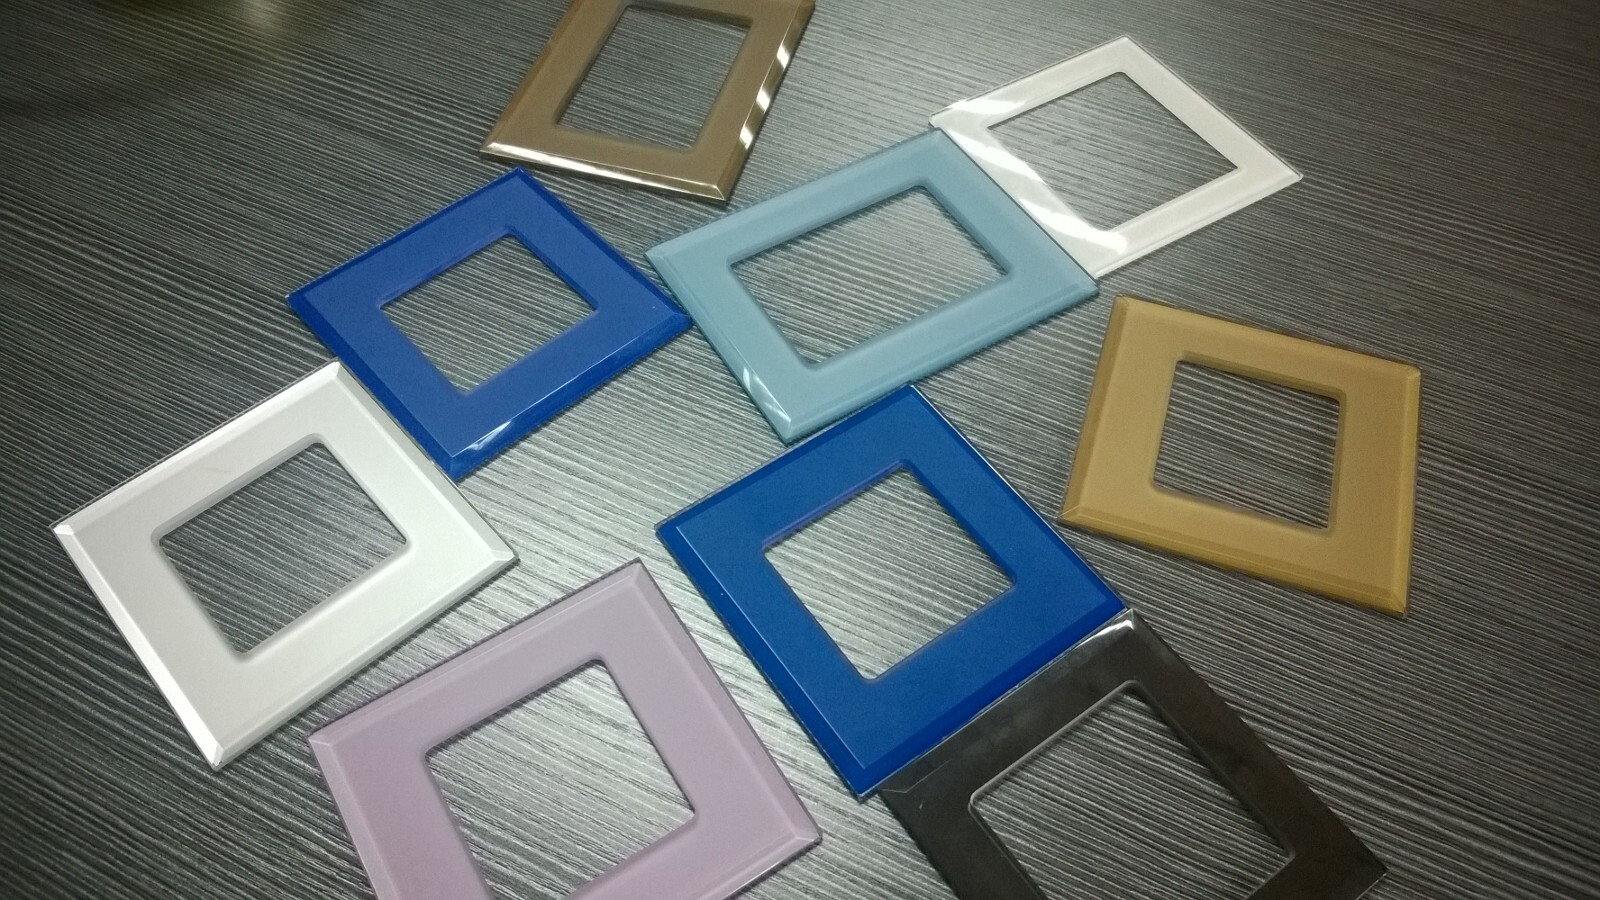 light touch glass switch panel,wall switch glass plates, glass touch switch cover